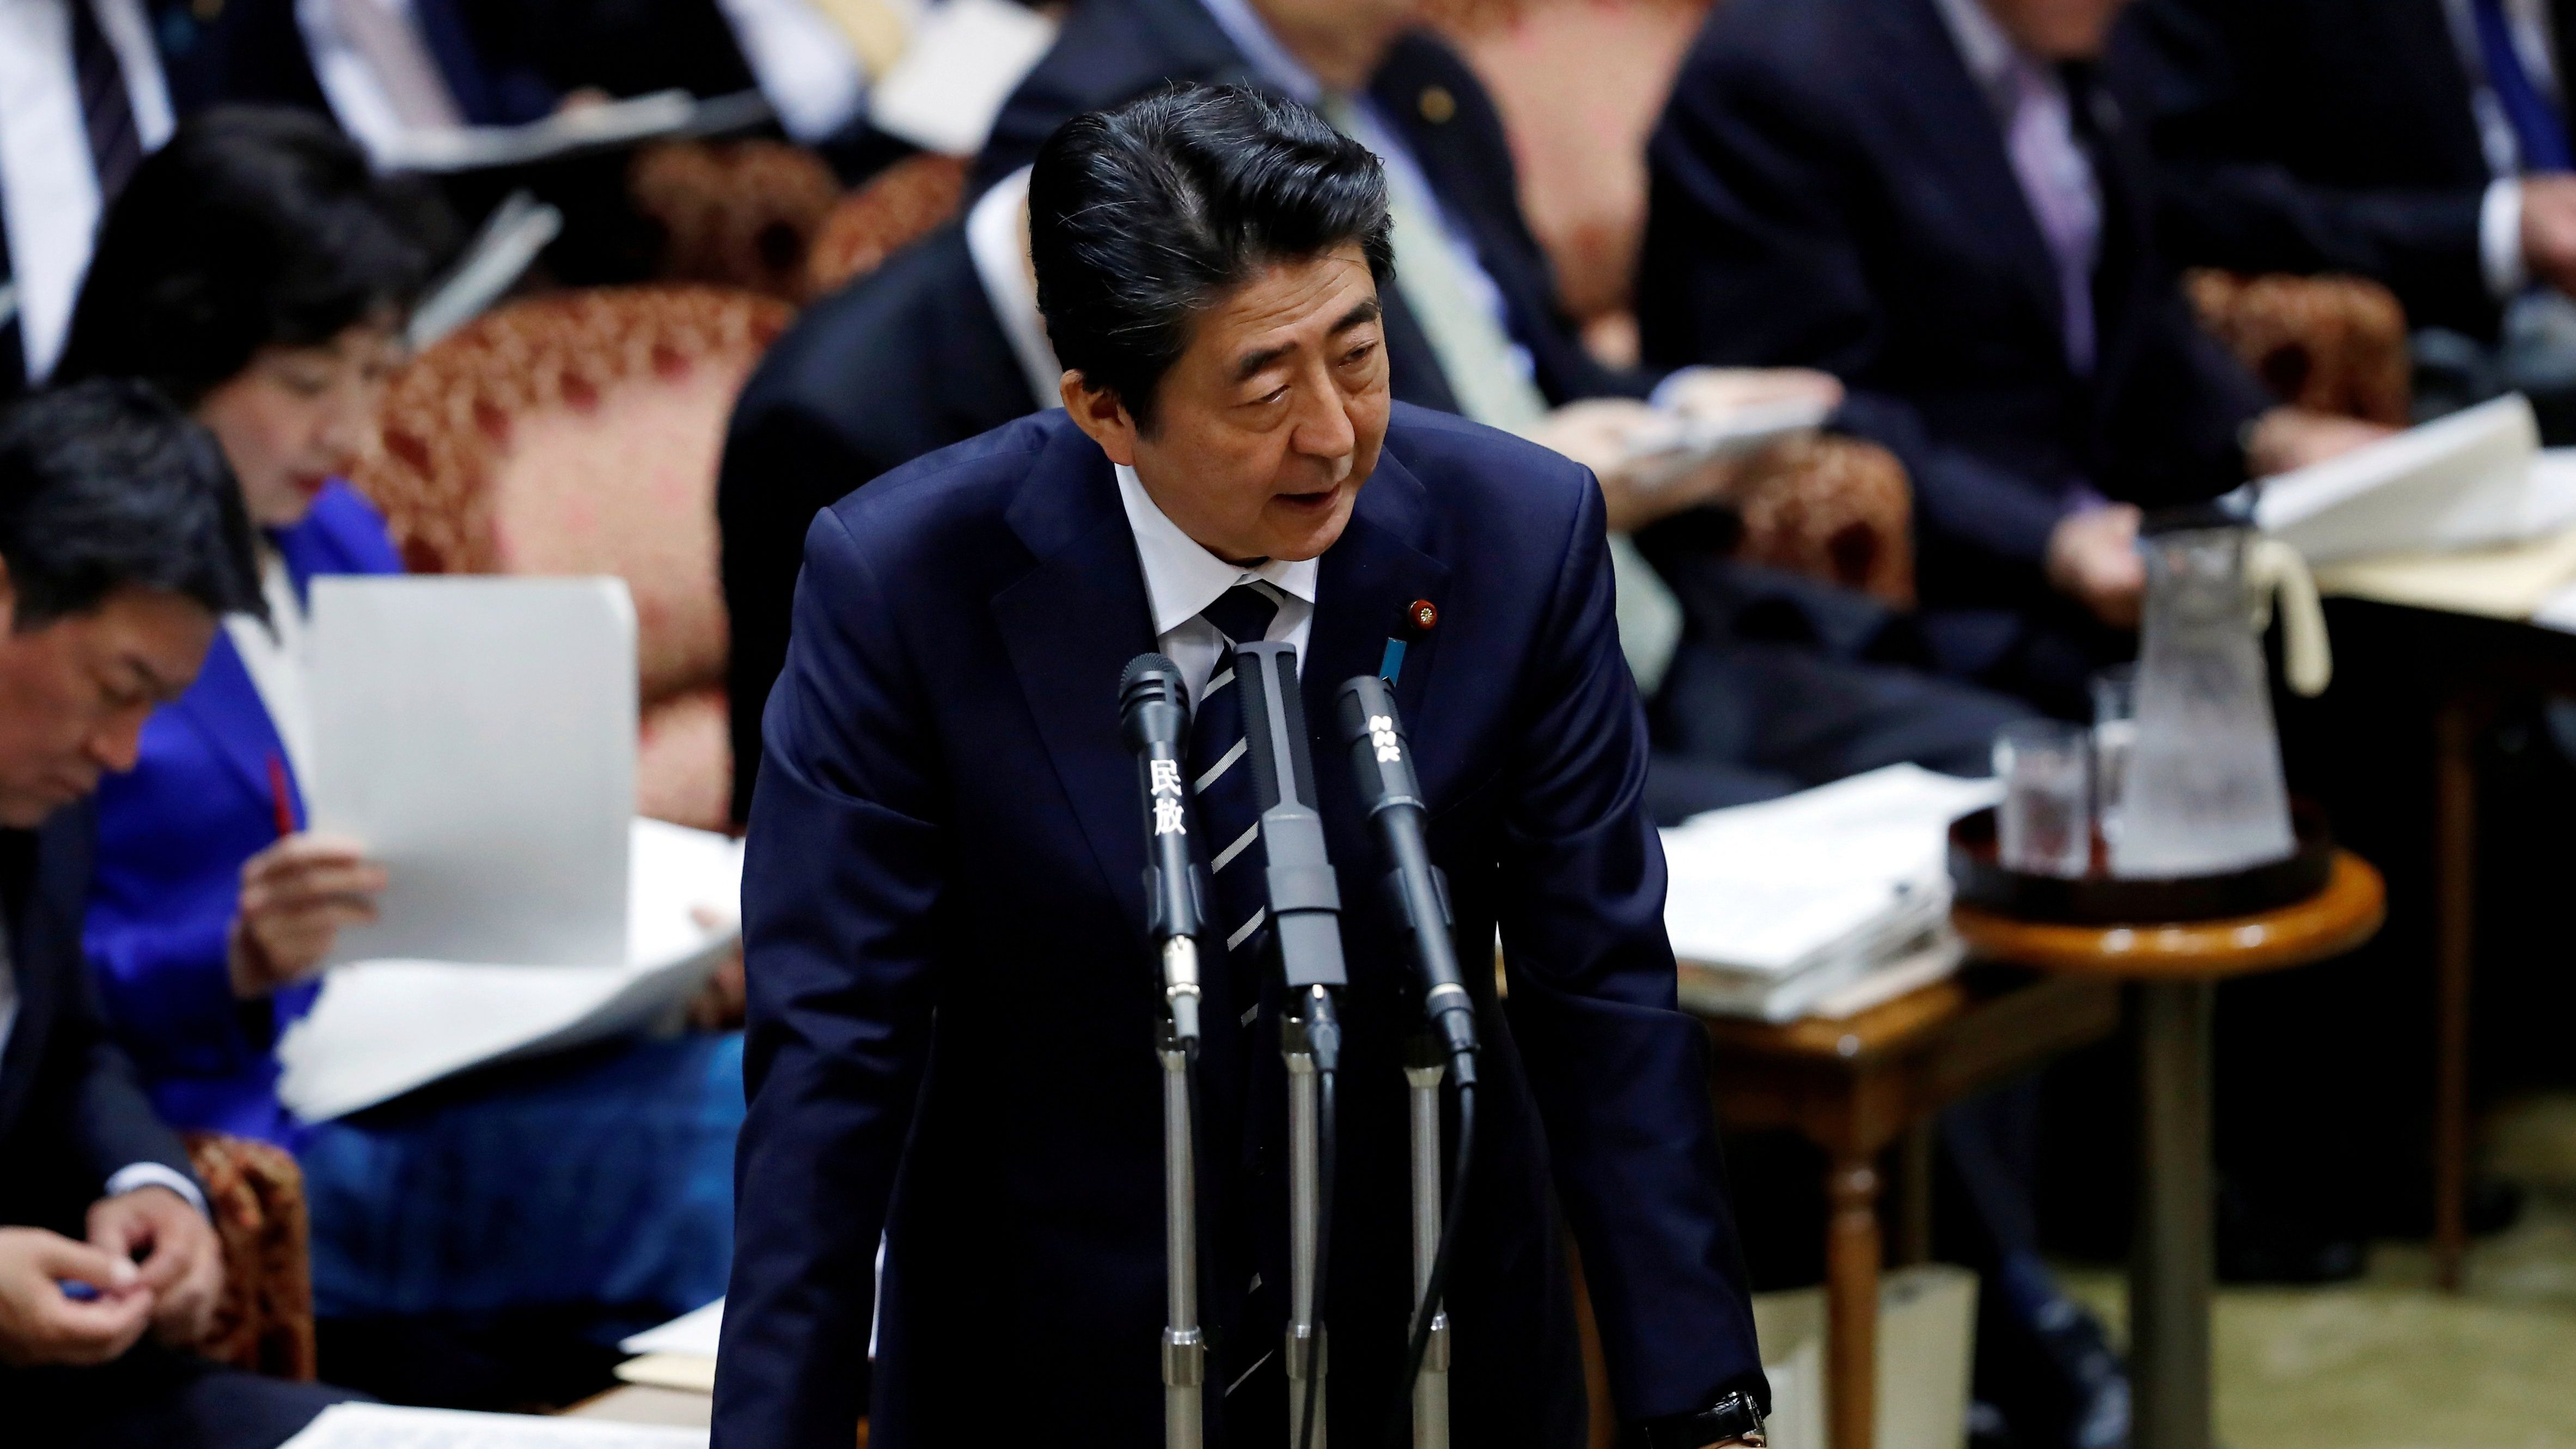 Japan's Prime Minister Shinzo Abe answers a question during an upper house parliamentary session in Tokyo, Japan March 28, 2018.